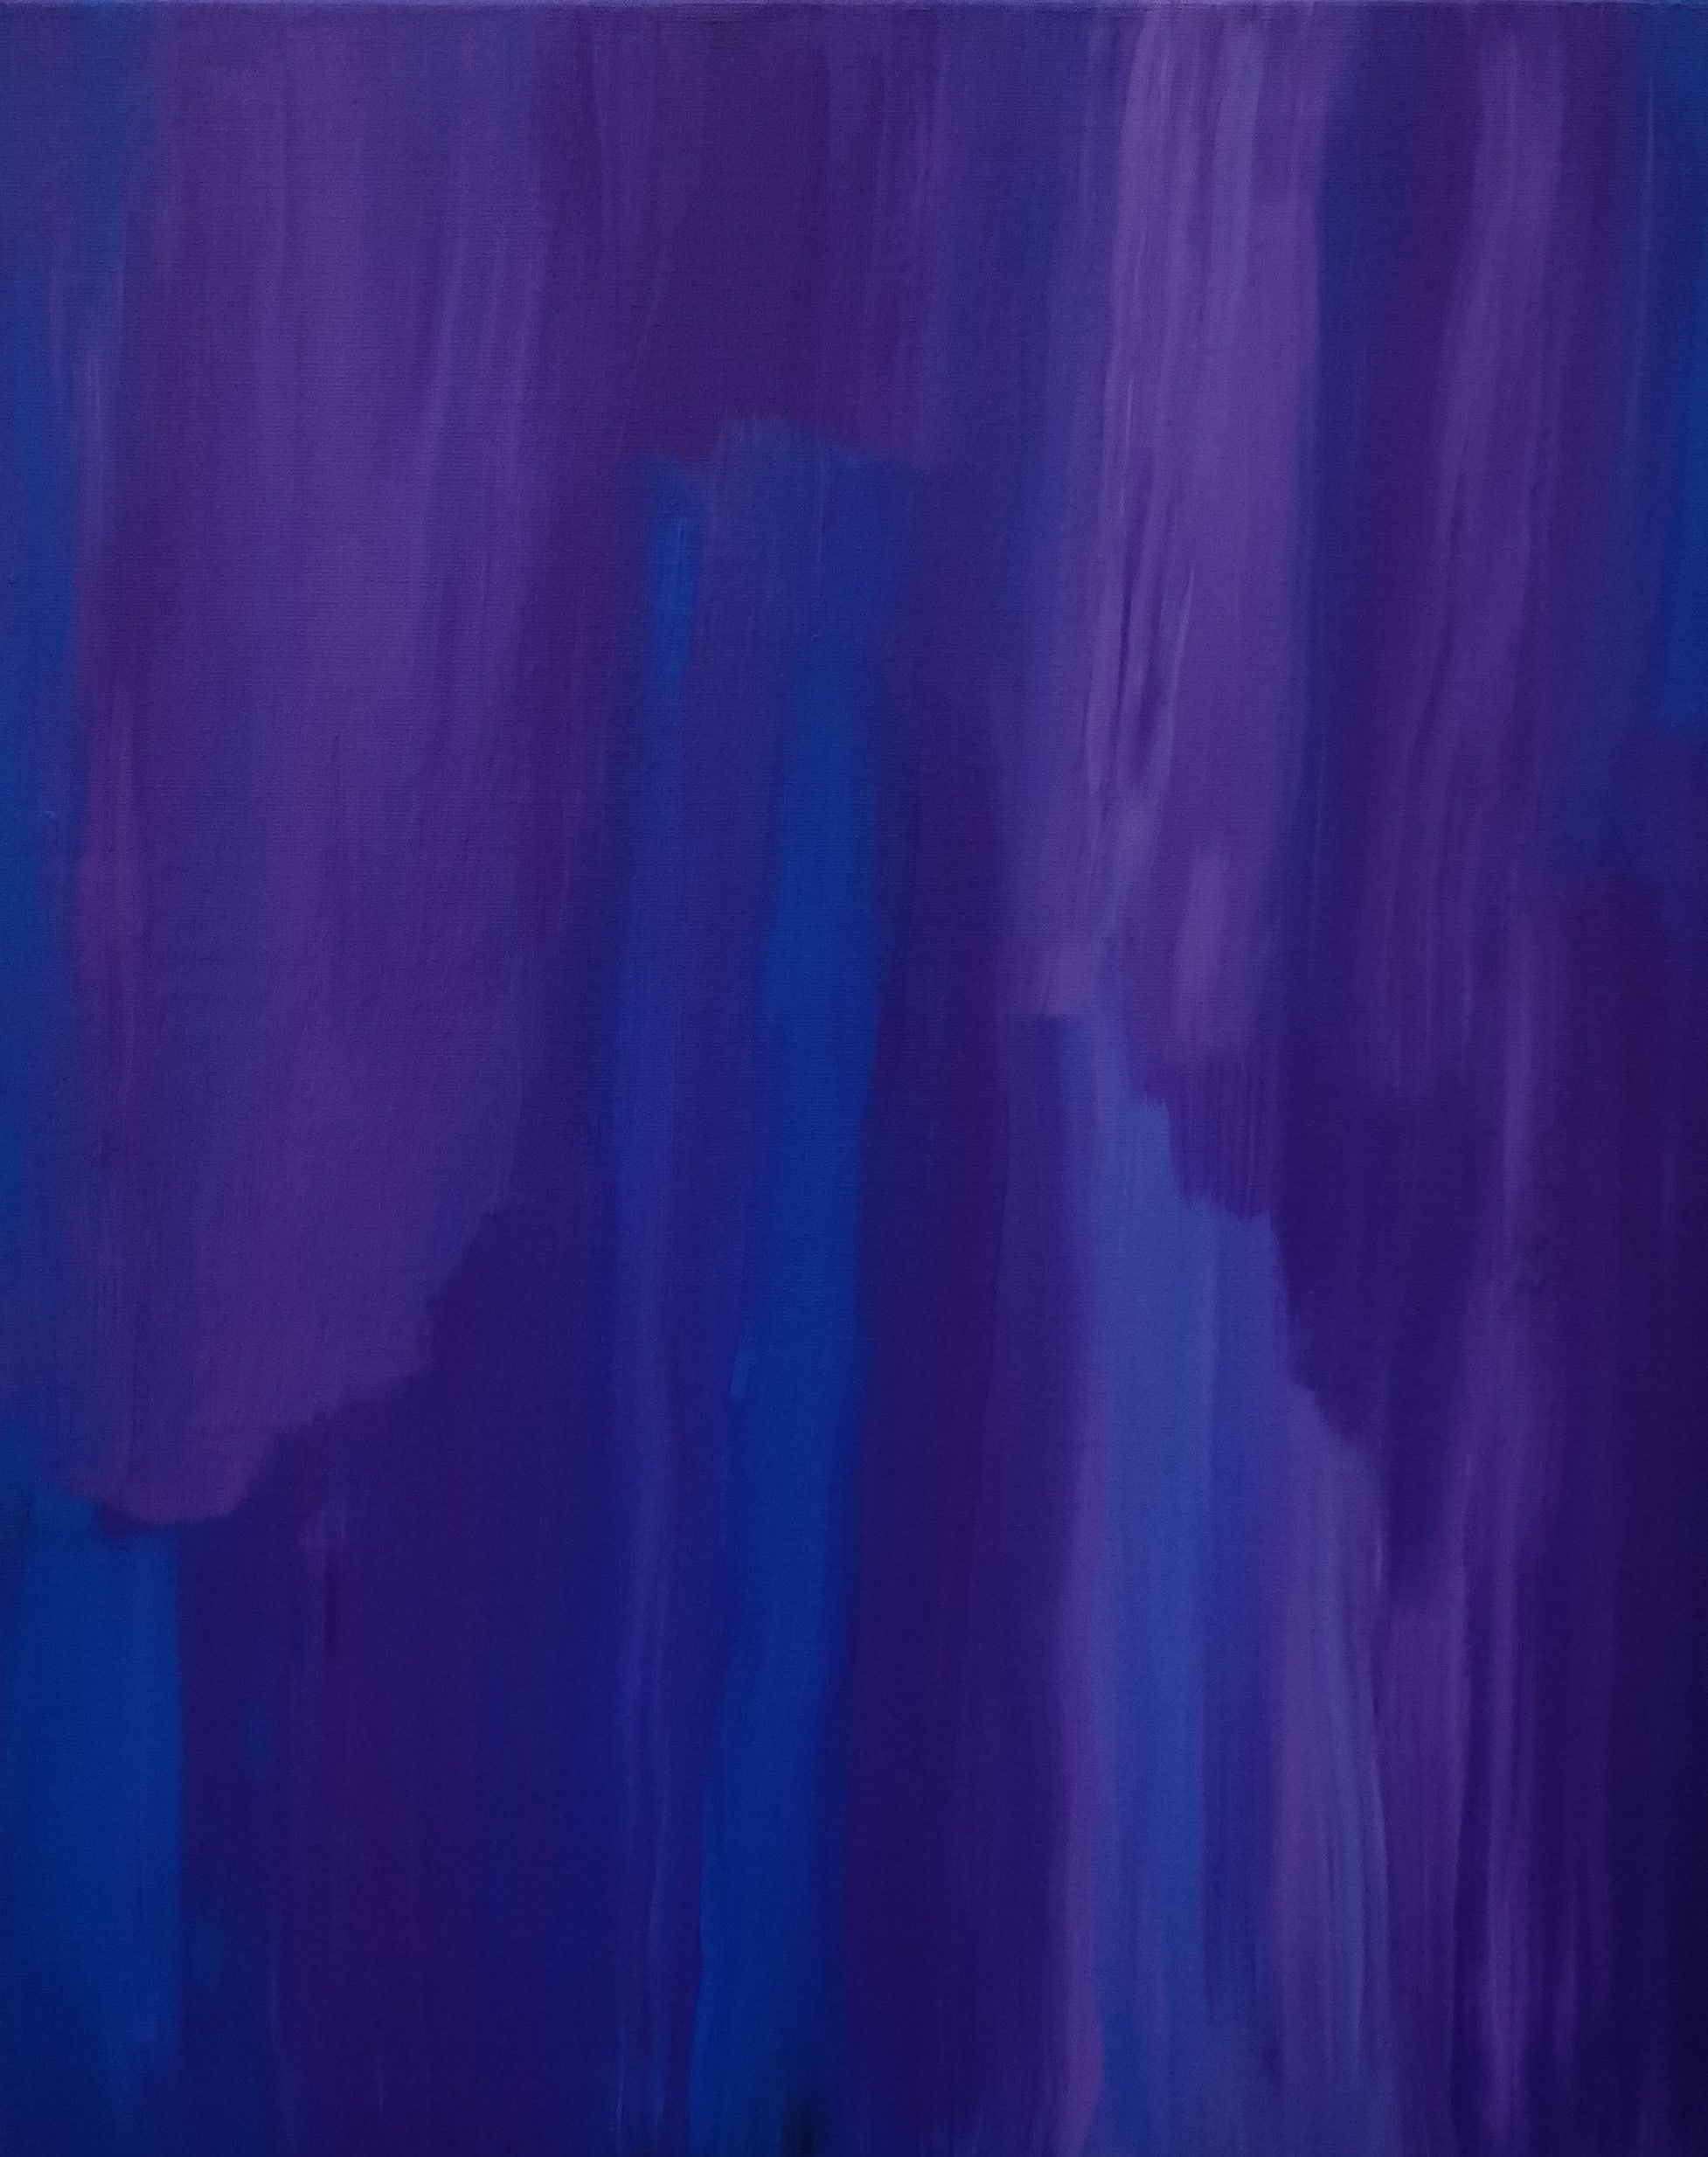 Awash The Luminous Palette Acrylic Paint Canvas Purple Blue Abstract Art Painting Wall Fine Artwork